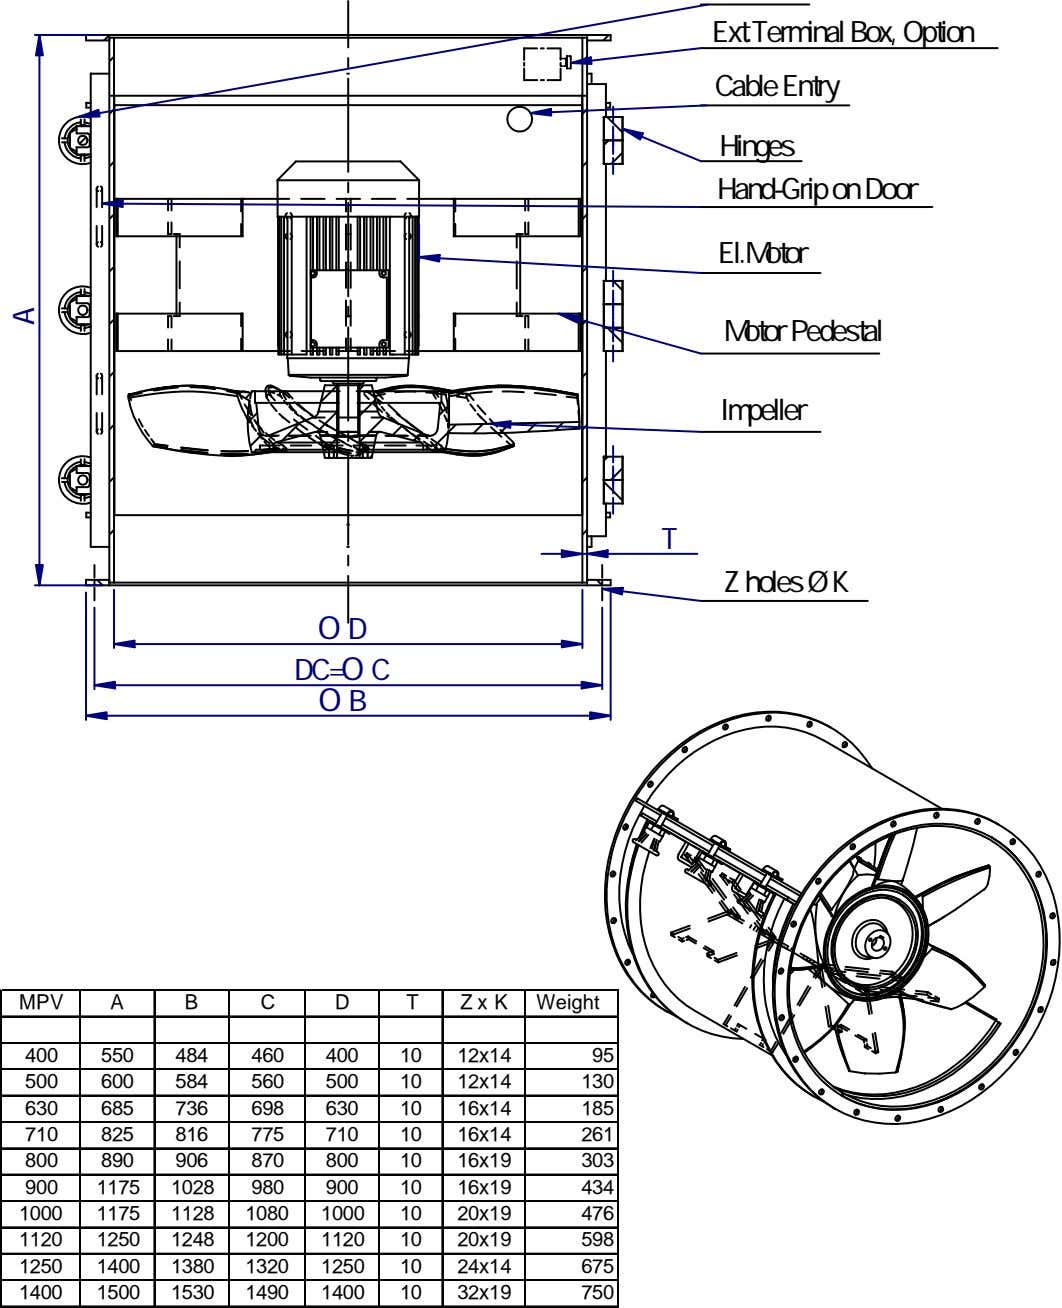 Ext.Terminal Box, Option Cable Entry Hinges Hand-Grip on Door El.Motor Motor Pedestal Impeller T Z